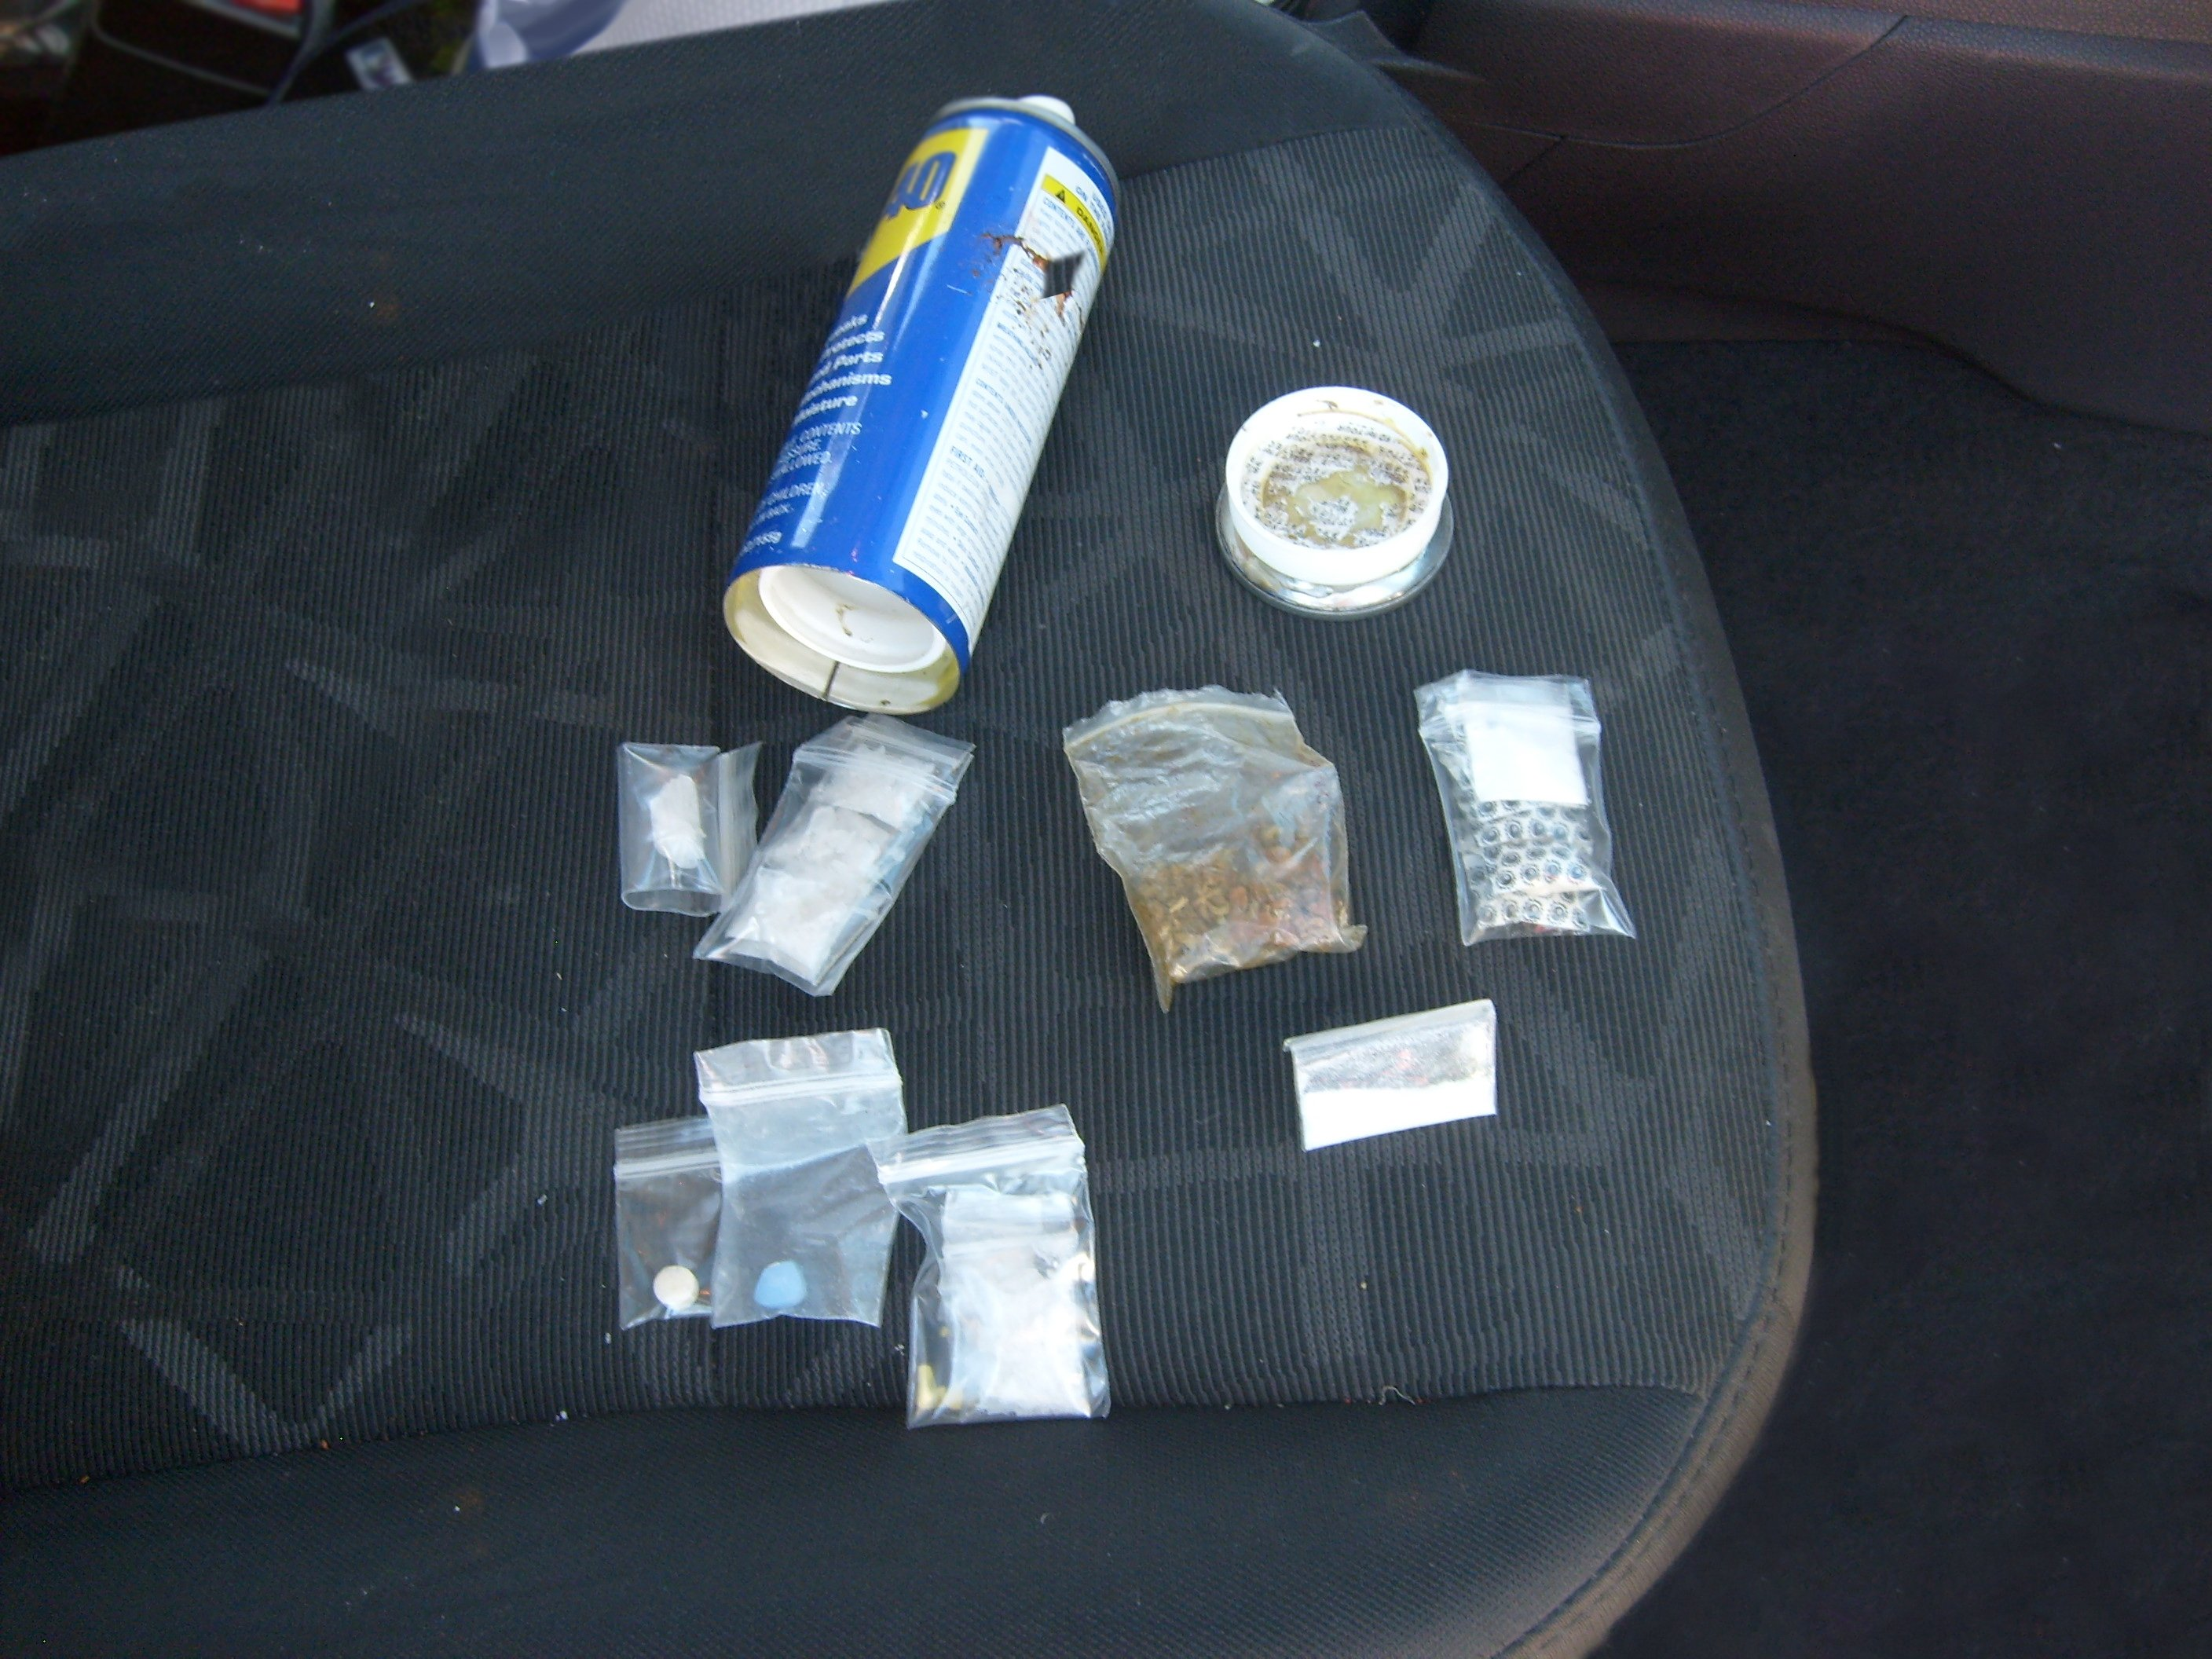 WD-40 can and contraband hidden inside at SR 90 Checkpoint. (Courtesy: U.S. Customs and Border Protection)